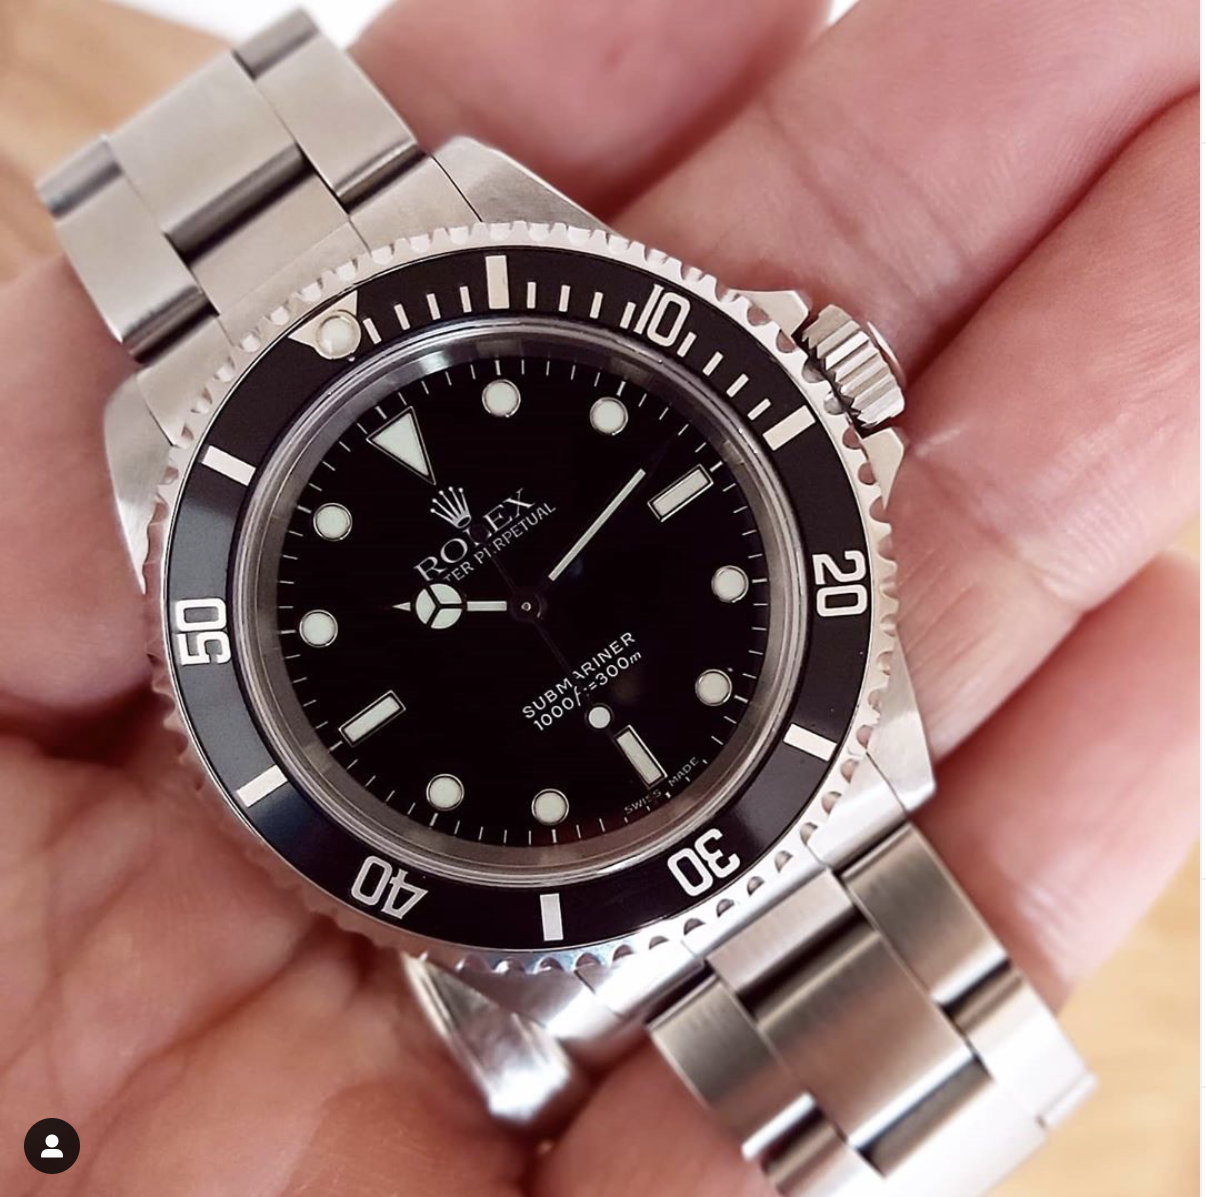 Rolex Submariner 14060m 'Serif Fat 4' Bezel